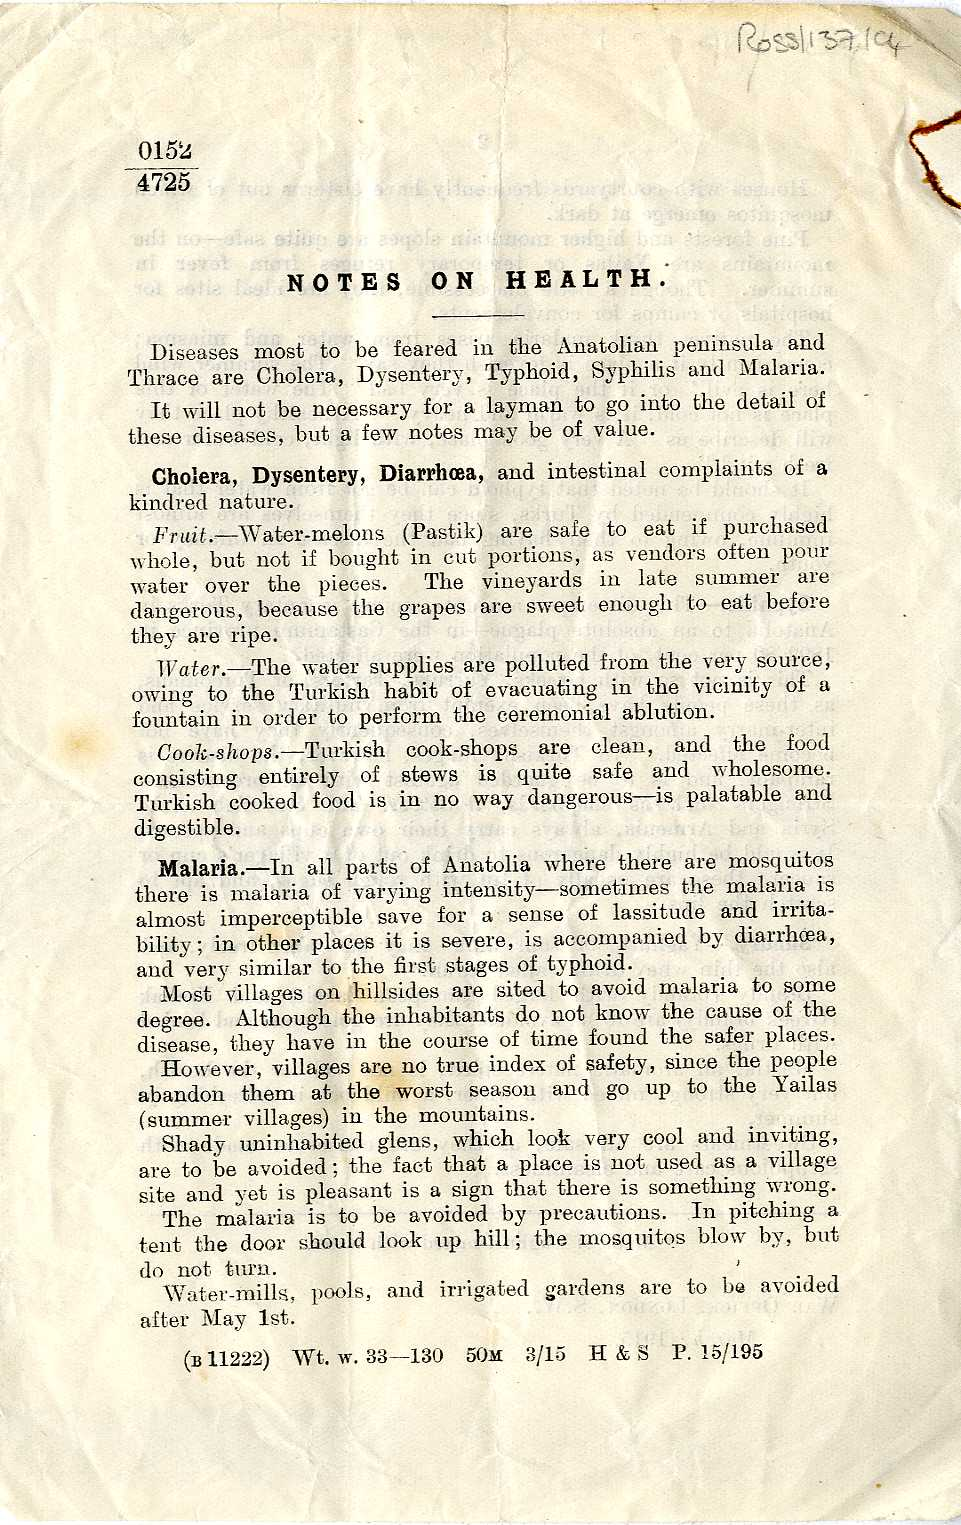 Pamphlet: 'Notes on Health' issued by the War Office in 1915 relating to diseases in the Anatolian peninsular